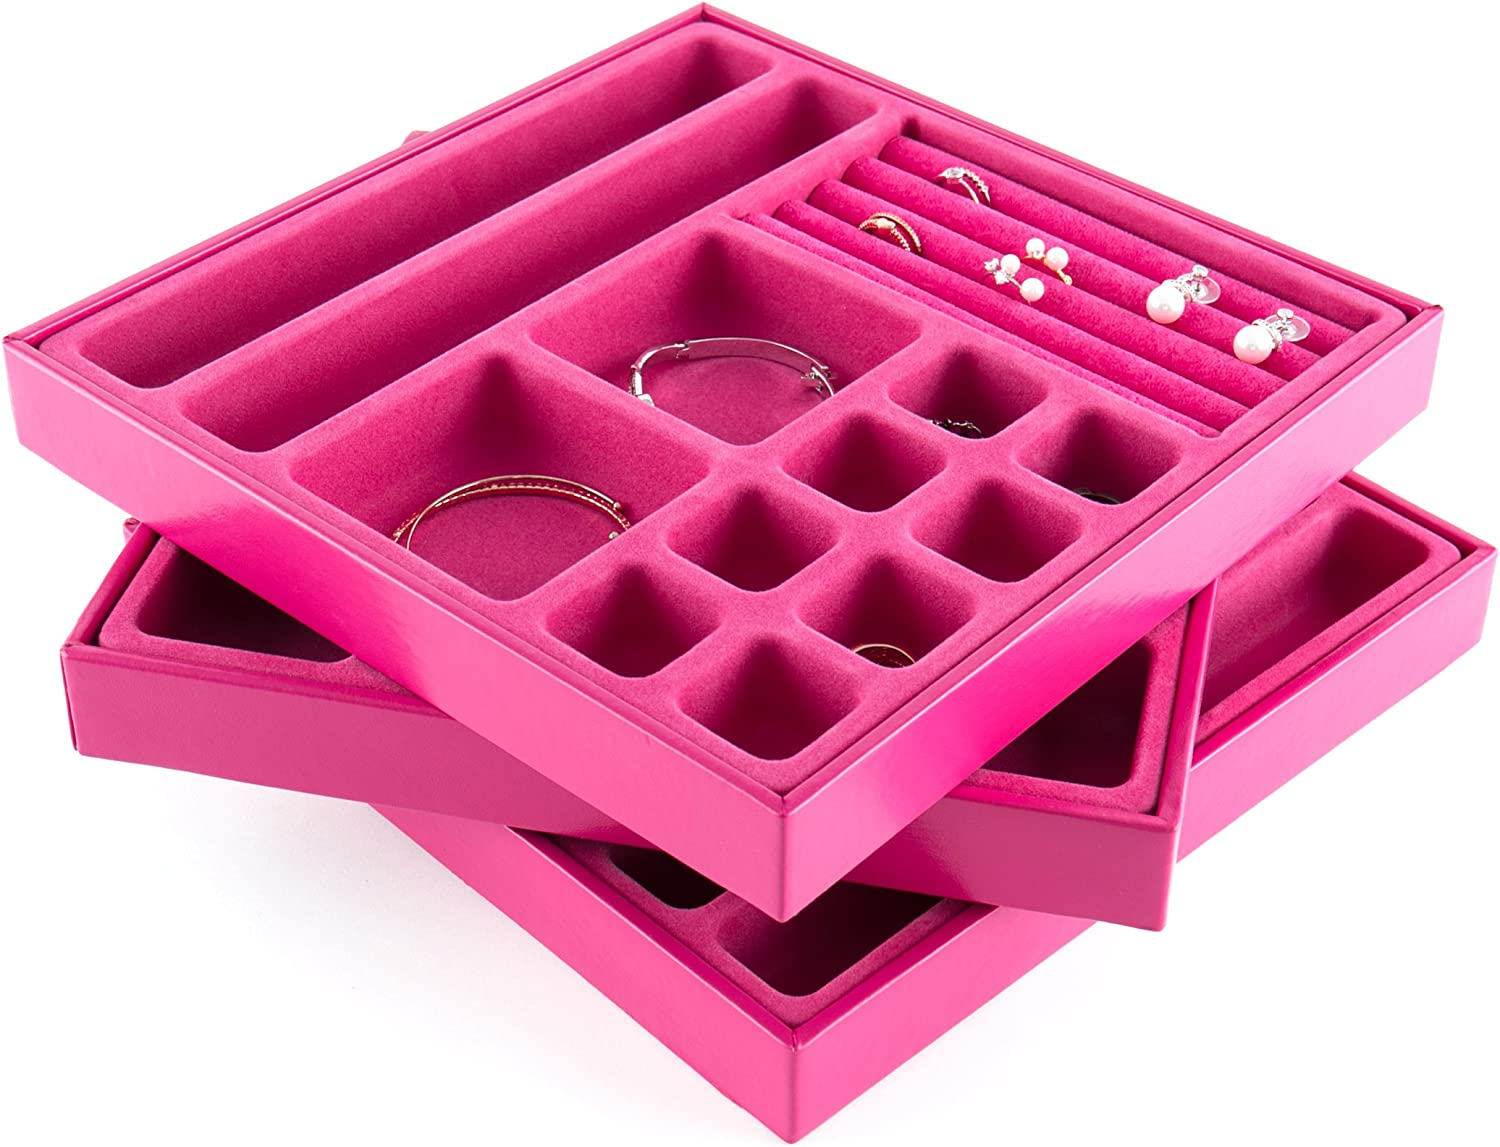 JackCubeDesign Stackable Leather Jewelry Tray Earring Necklace Bracelet Ring Organizer Display Storage Box Set of 3, Pink, 10.3 X 10.3 X 1.3 inches – MK337ABC